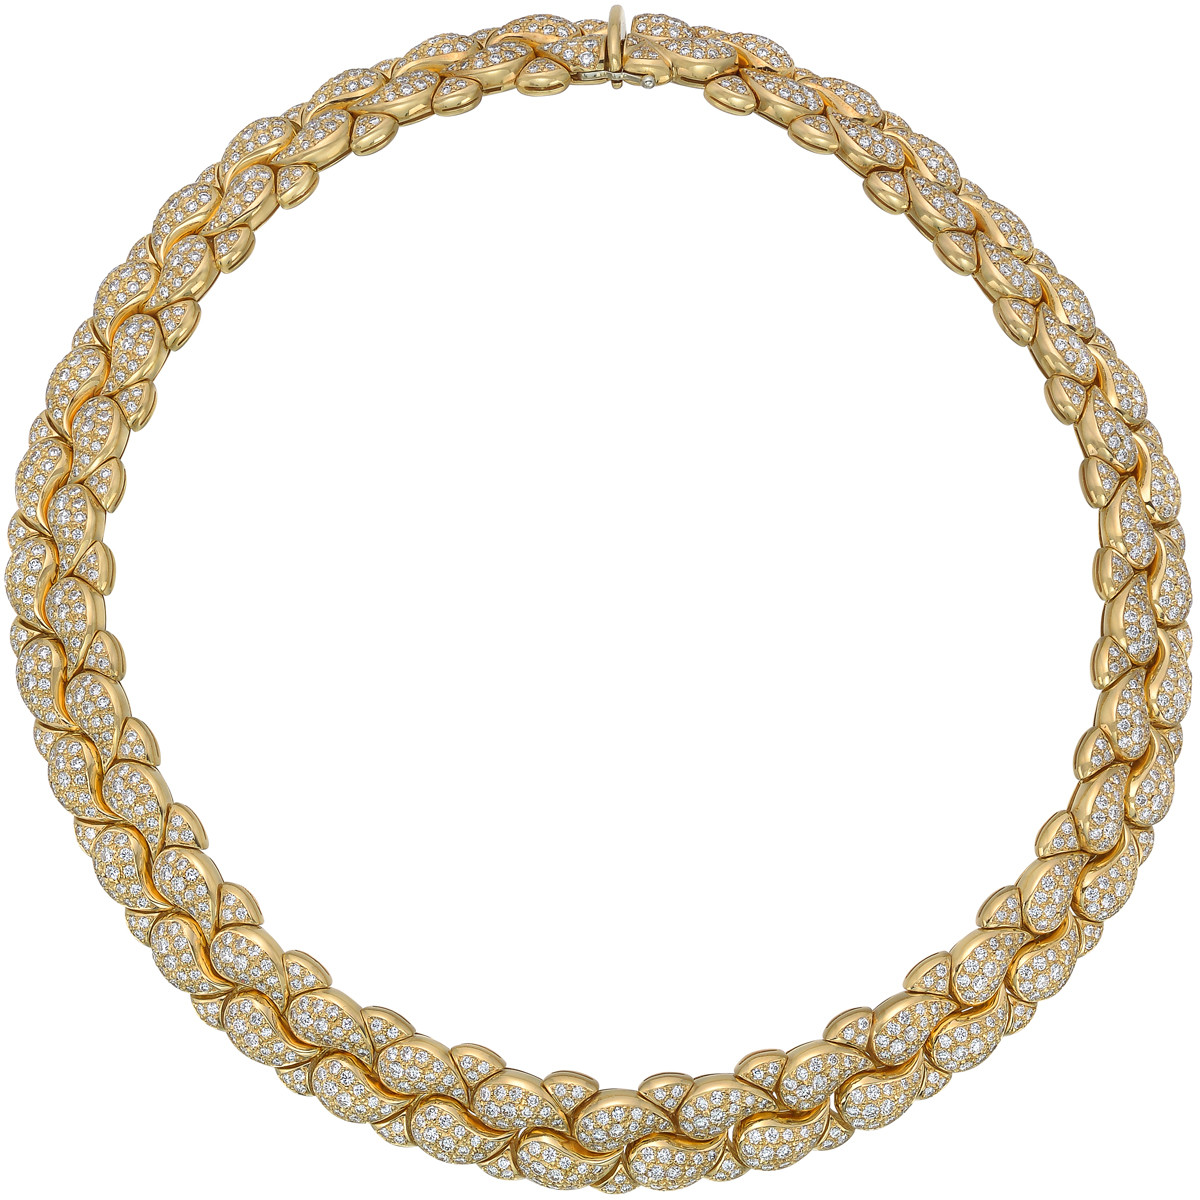 18k Yellow Gold & Diamond 'Casmir' Necklace